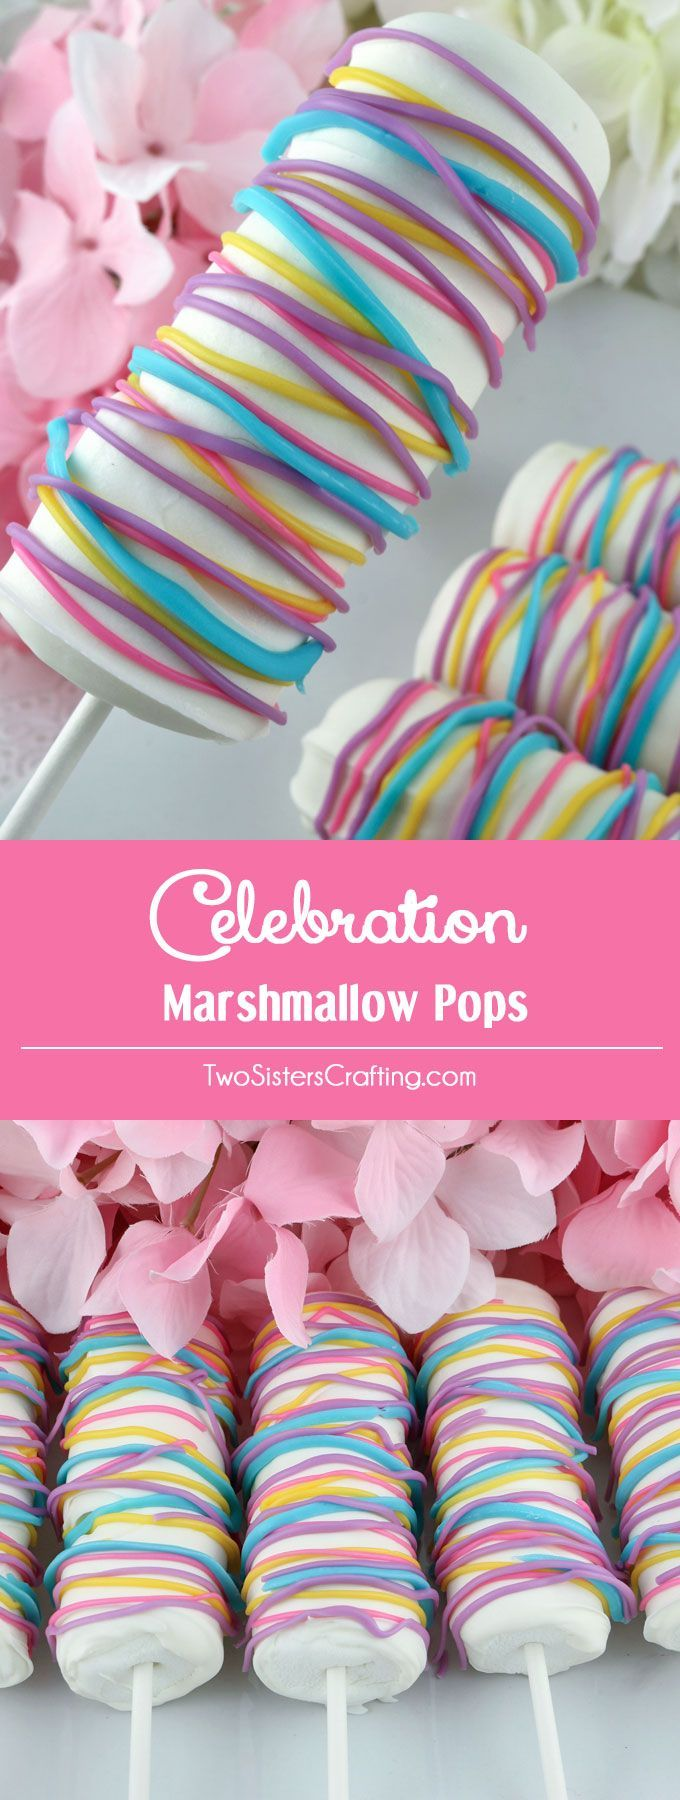 Celebration Marshmallow Pops - a fun Easter dessert that your family will love. Easy to make and super delicious, these white chocolate covered Marshmallow Pops would be a great Spring Treat for this year's Easter celebration, Mother's Day or a Spring Brunch. Pin this delicious Easter Candy for later and follow us for more great Easter Food Ideas.